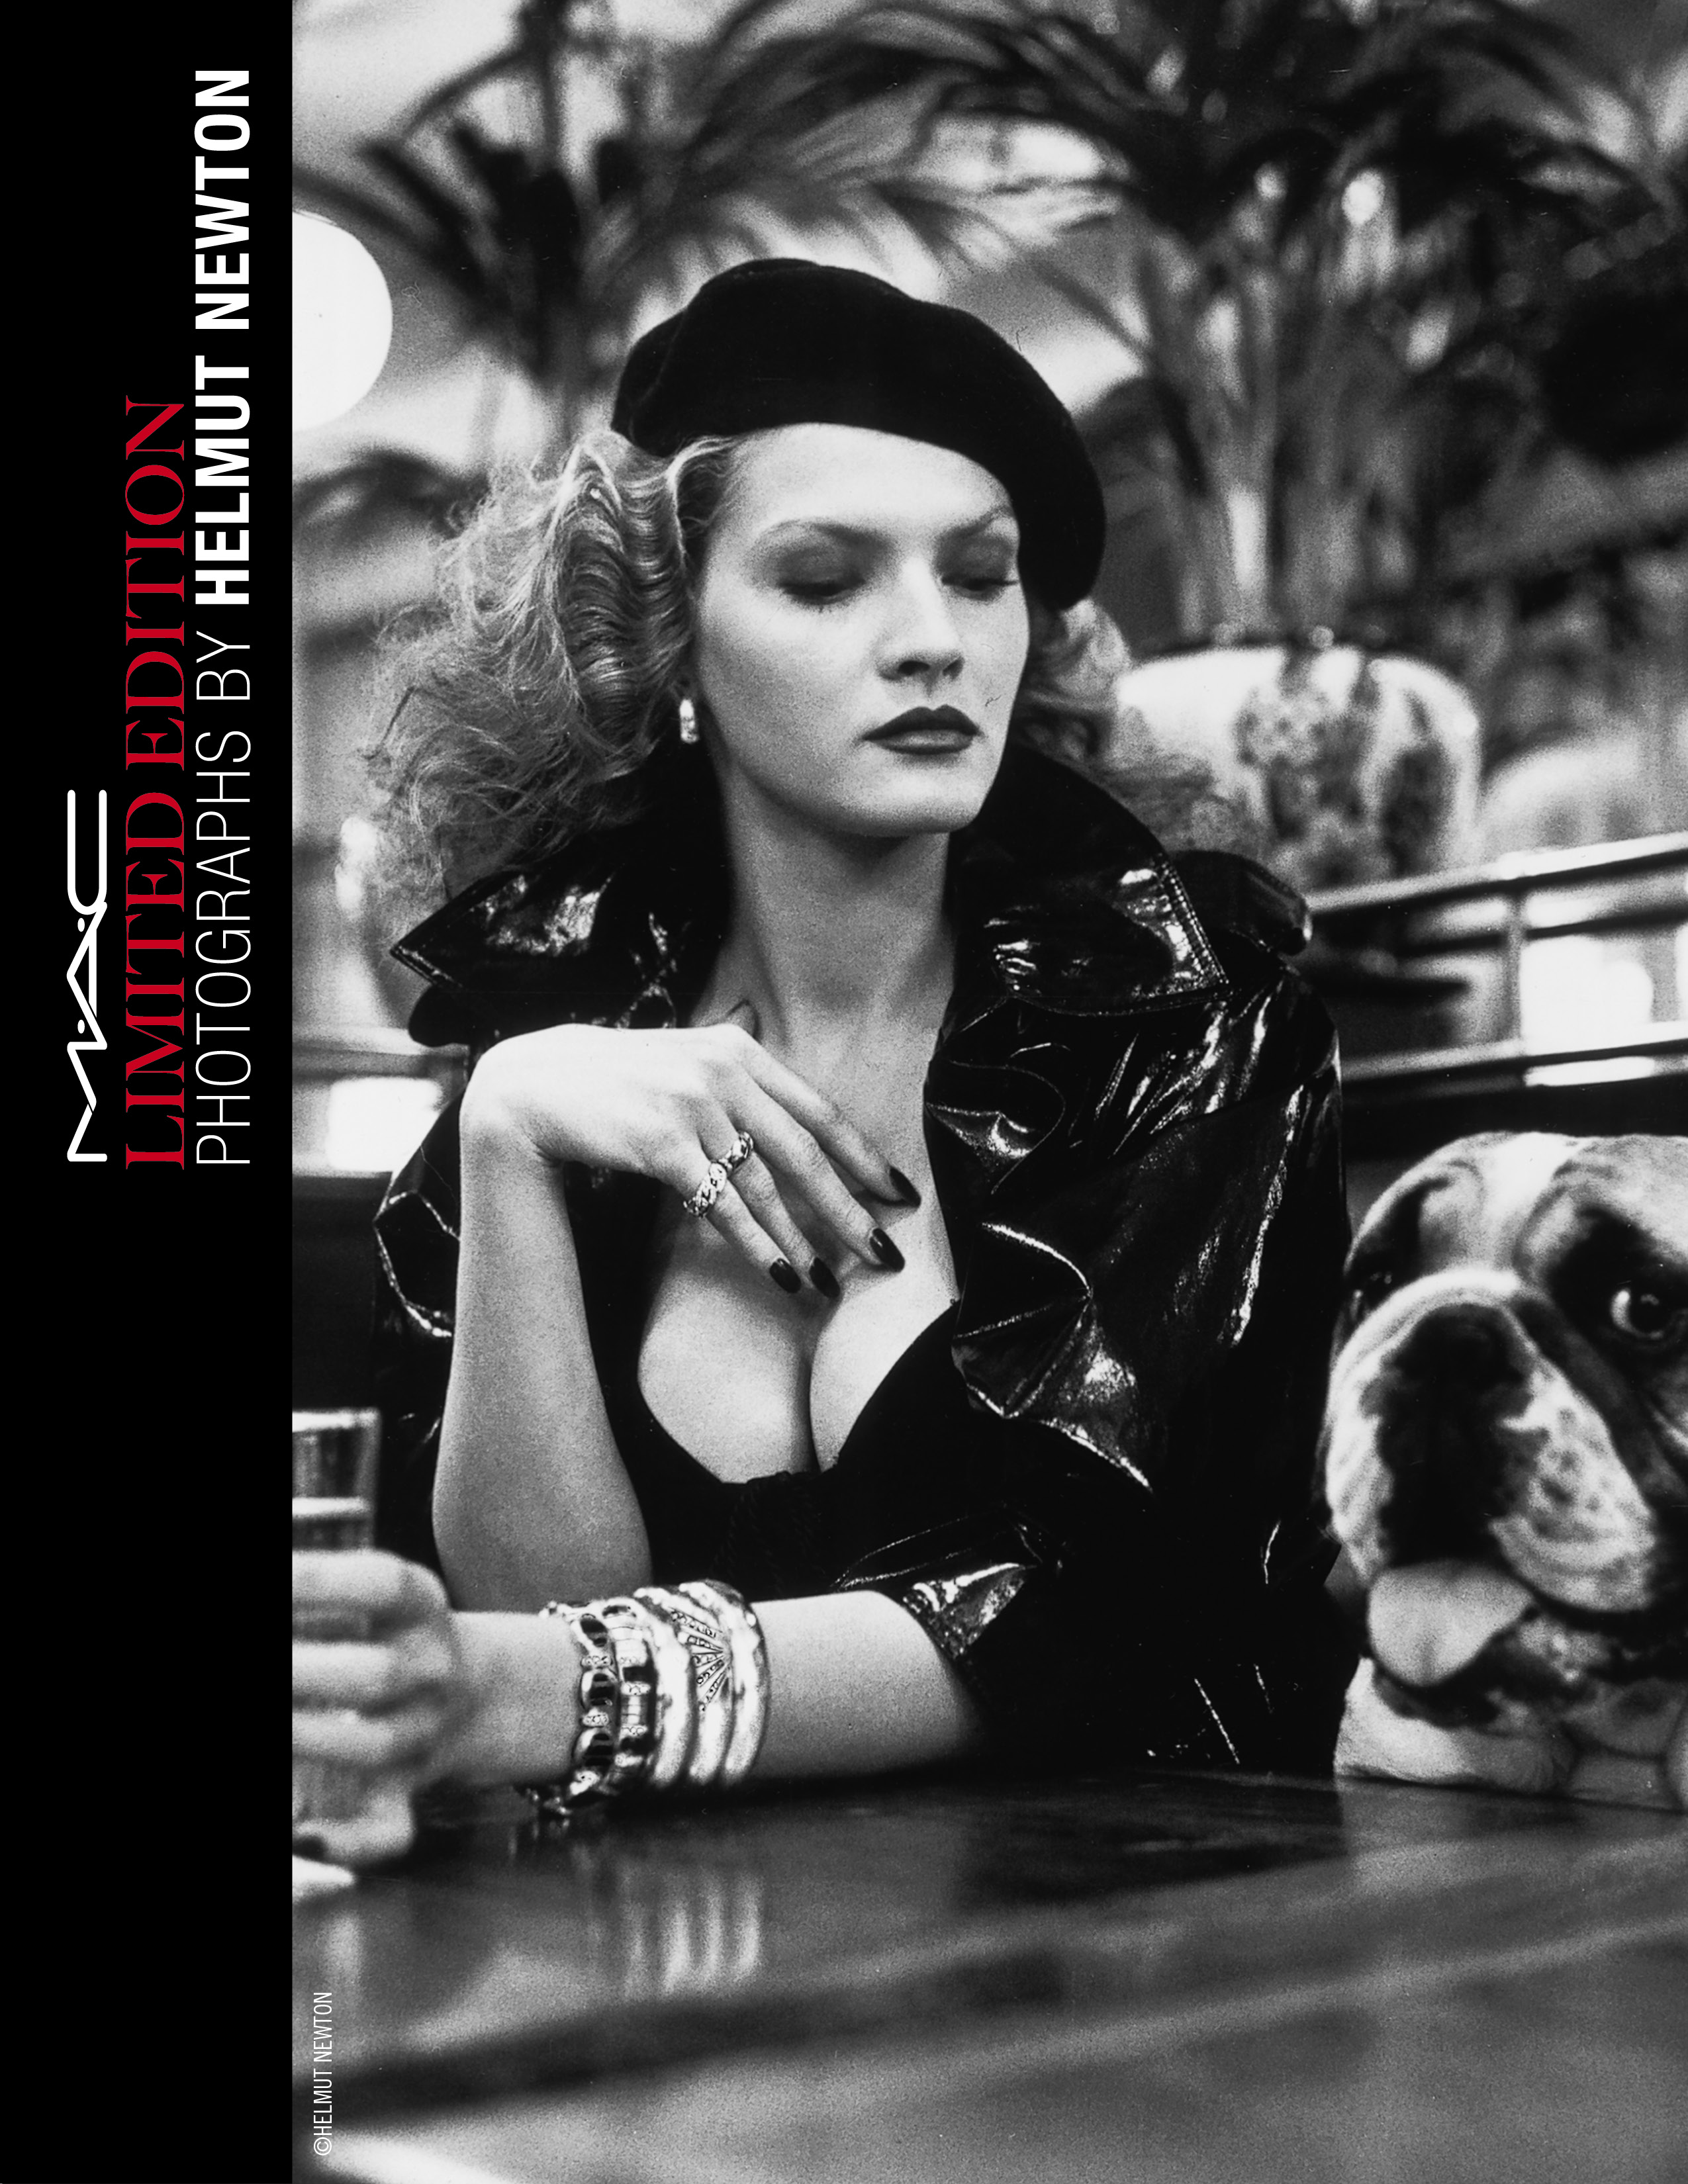 MAC ❤ Helmut Newton ❤ She